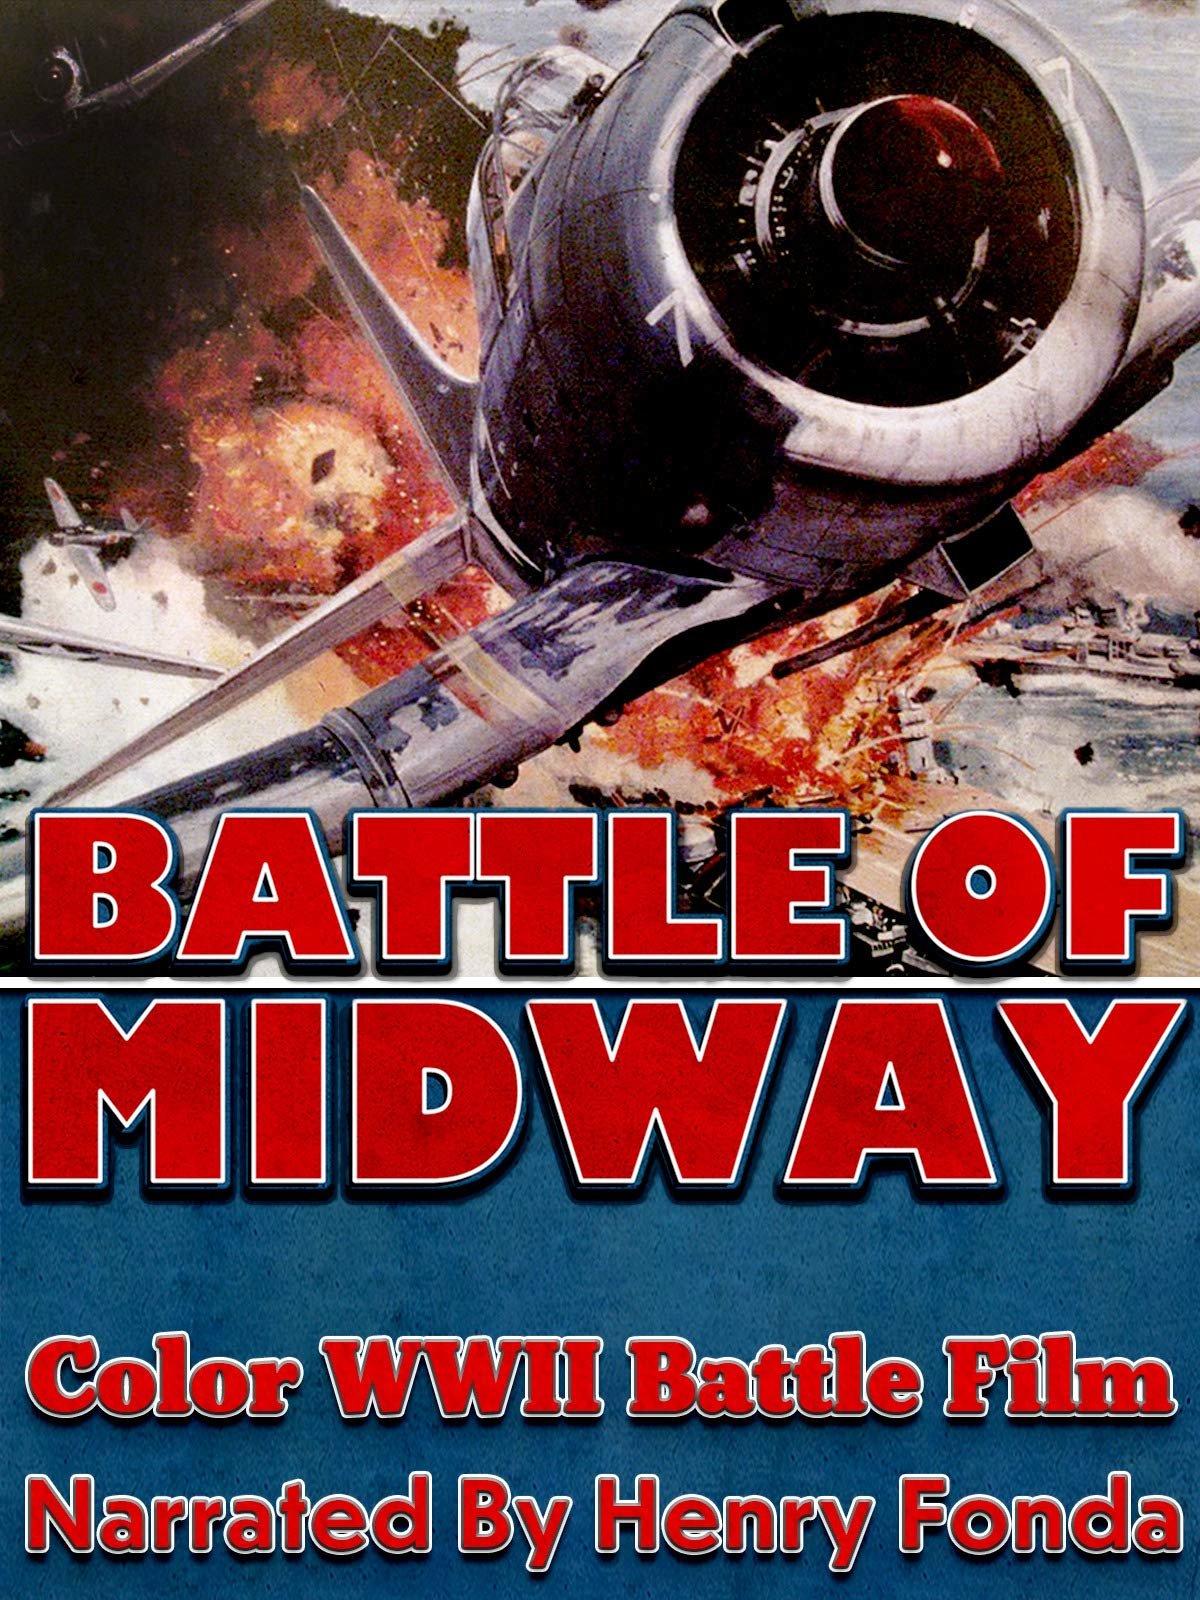 Battle Of Midway - Color WWII Battle Film, Narrated By Henry Fonda